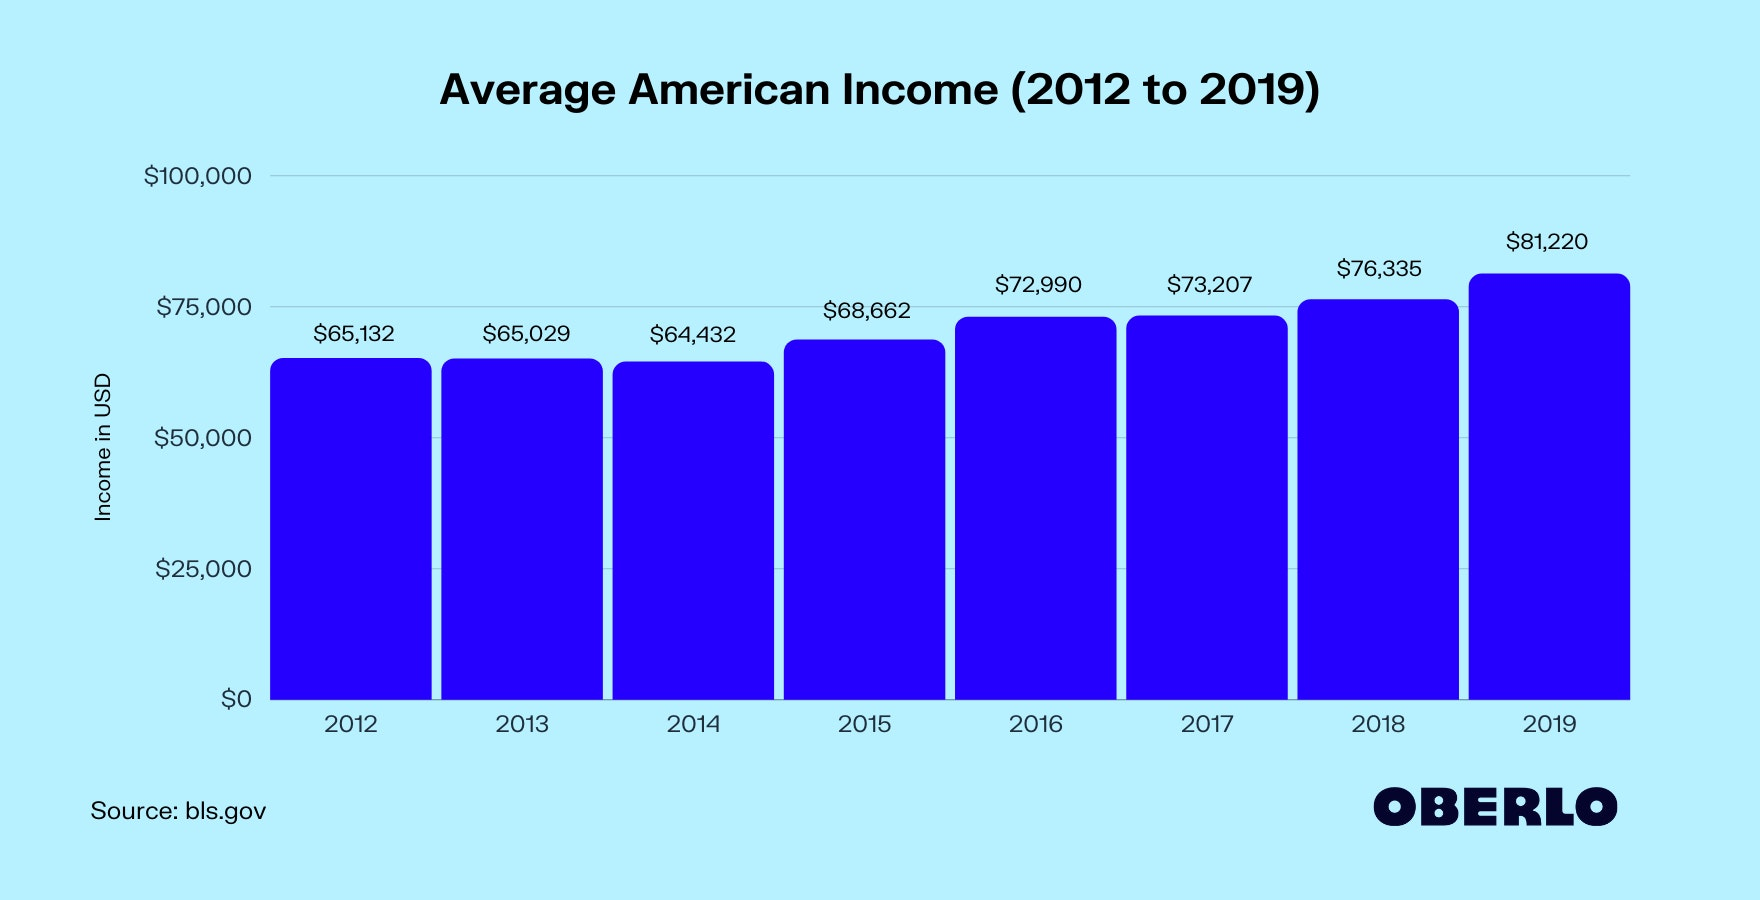 Average American Income